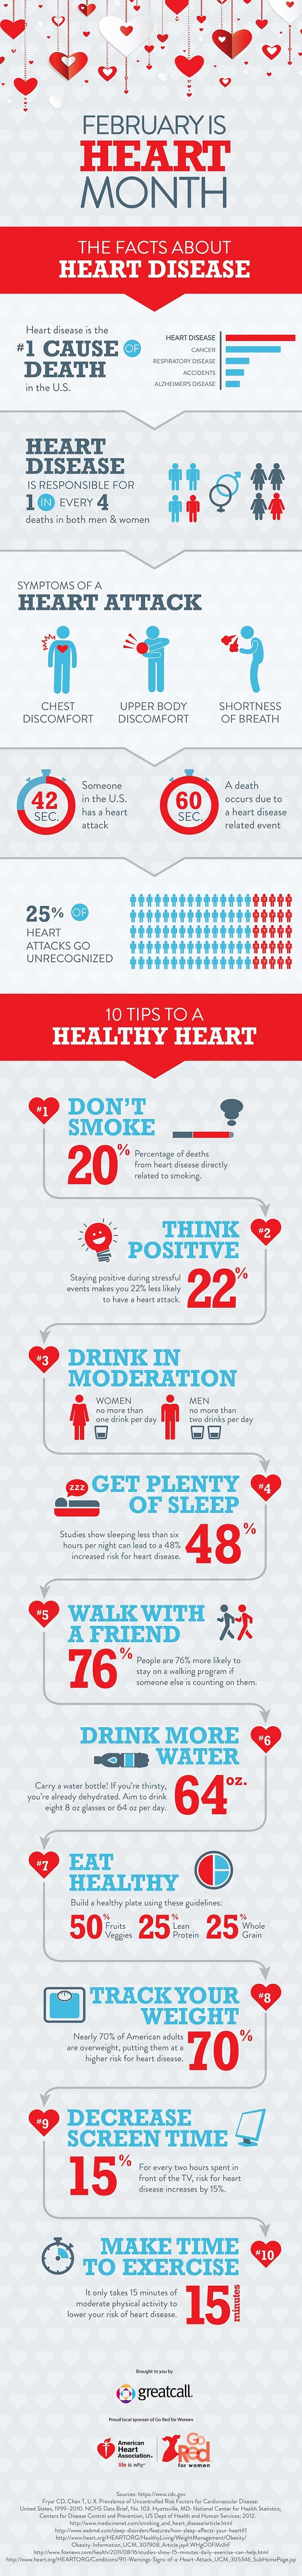 American Heart Association Infographic with Heart Disease Facts and Tips for a Healthy Heart.